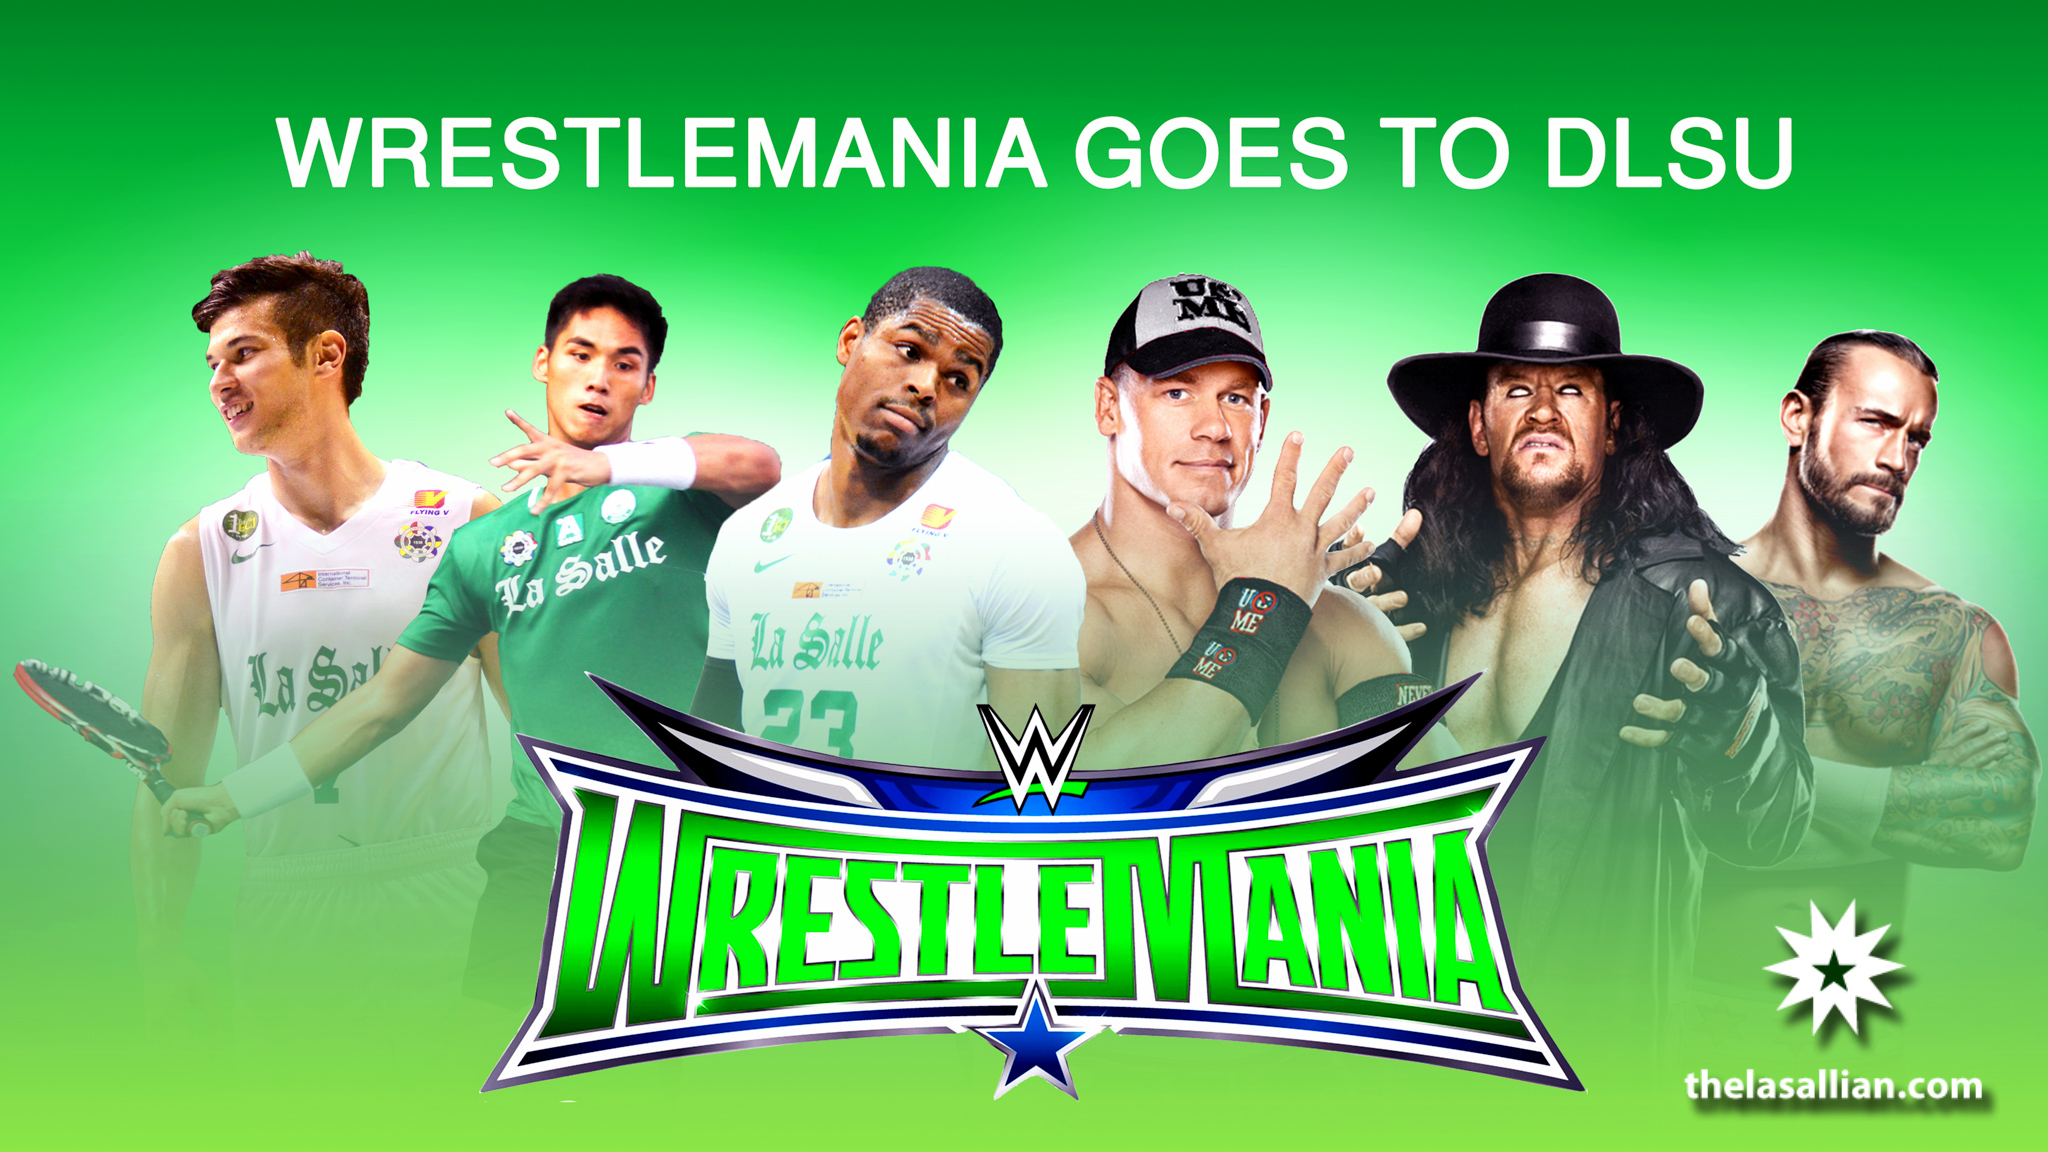 WRESTLEMANIA - edited by joyce